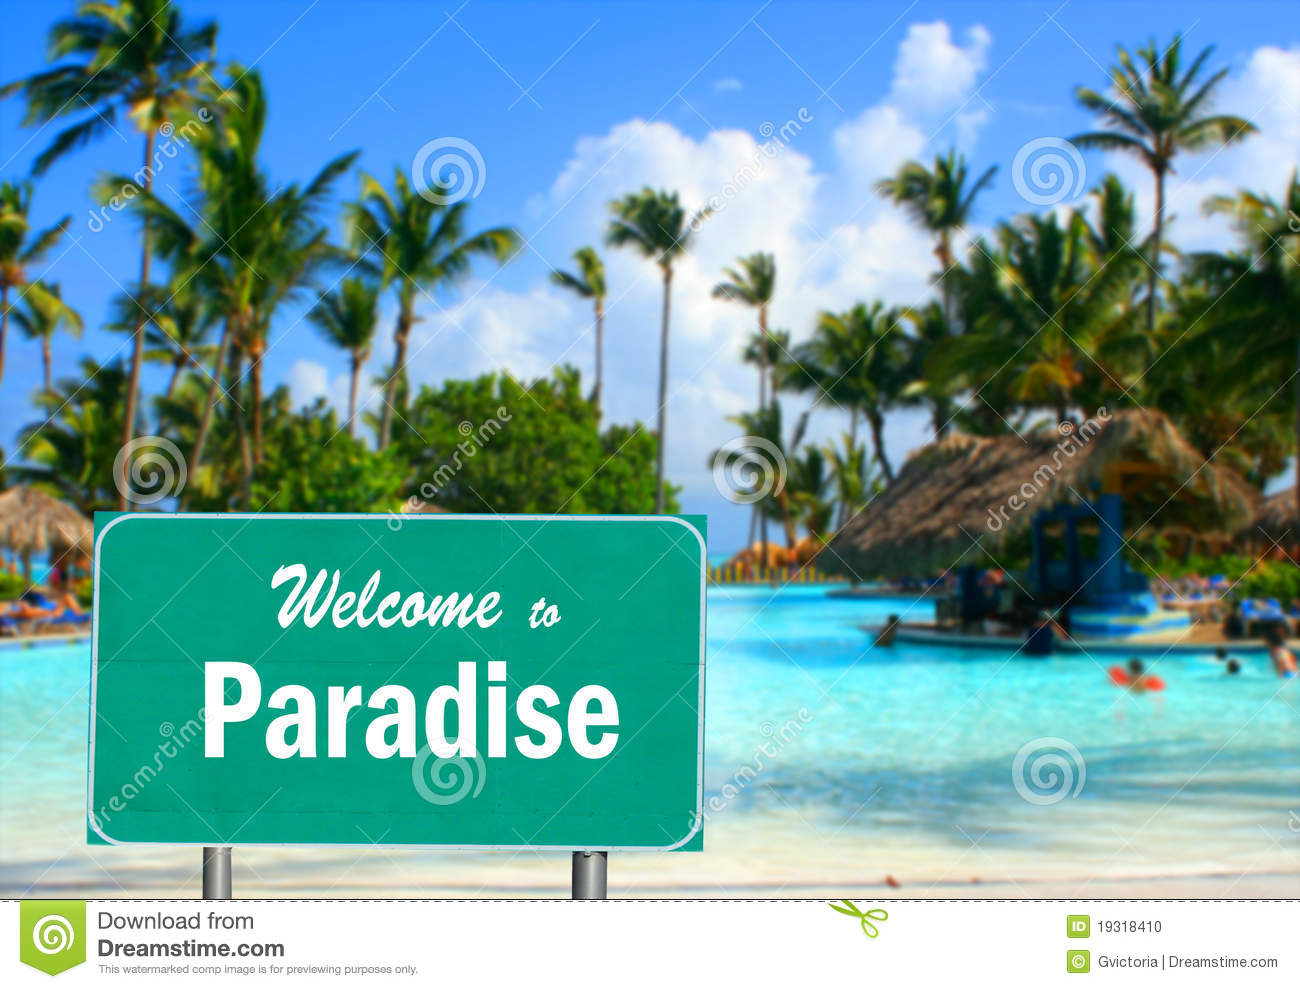 Welcome To Paradise Sign Stock Photo Image 19318410